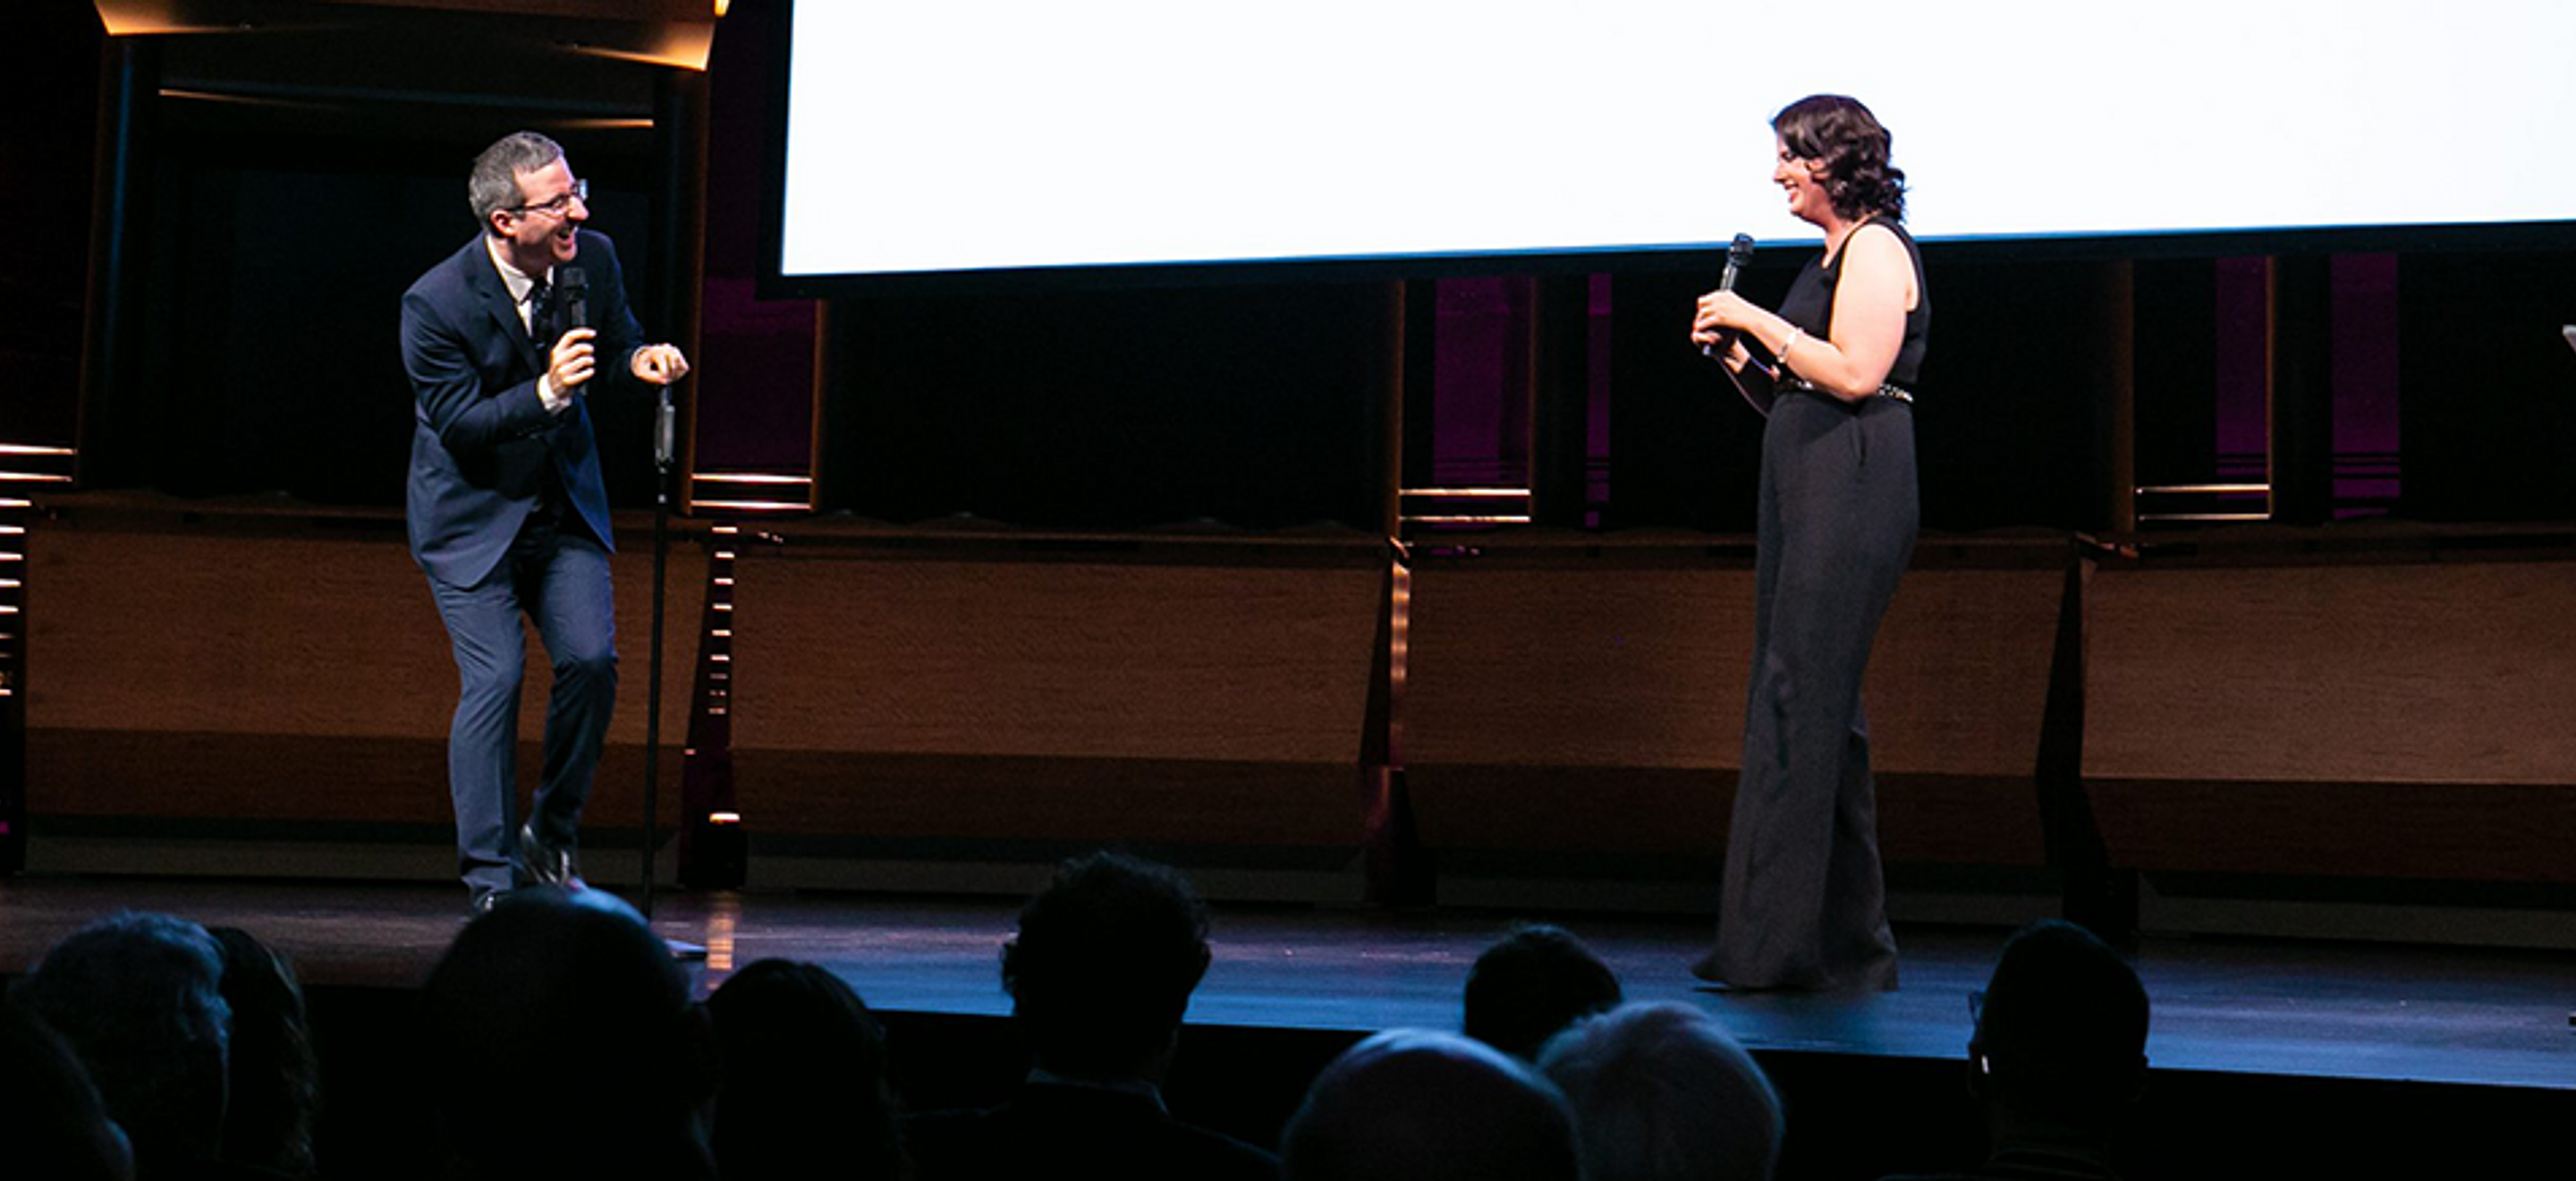 Comedian John Oliver and IRAP Executive Director Becca Heller stand onstage at a benefit. The heads of audience members are barely visible, the stage has a slight blue wash, and there is a lucite podium with a purple sign with the IRAP logo.